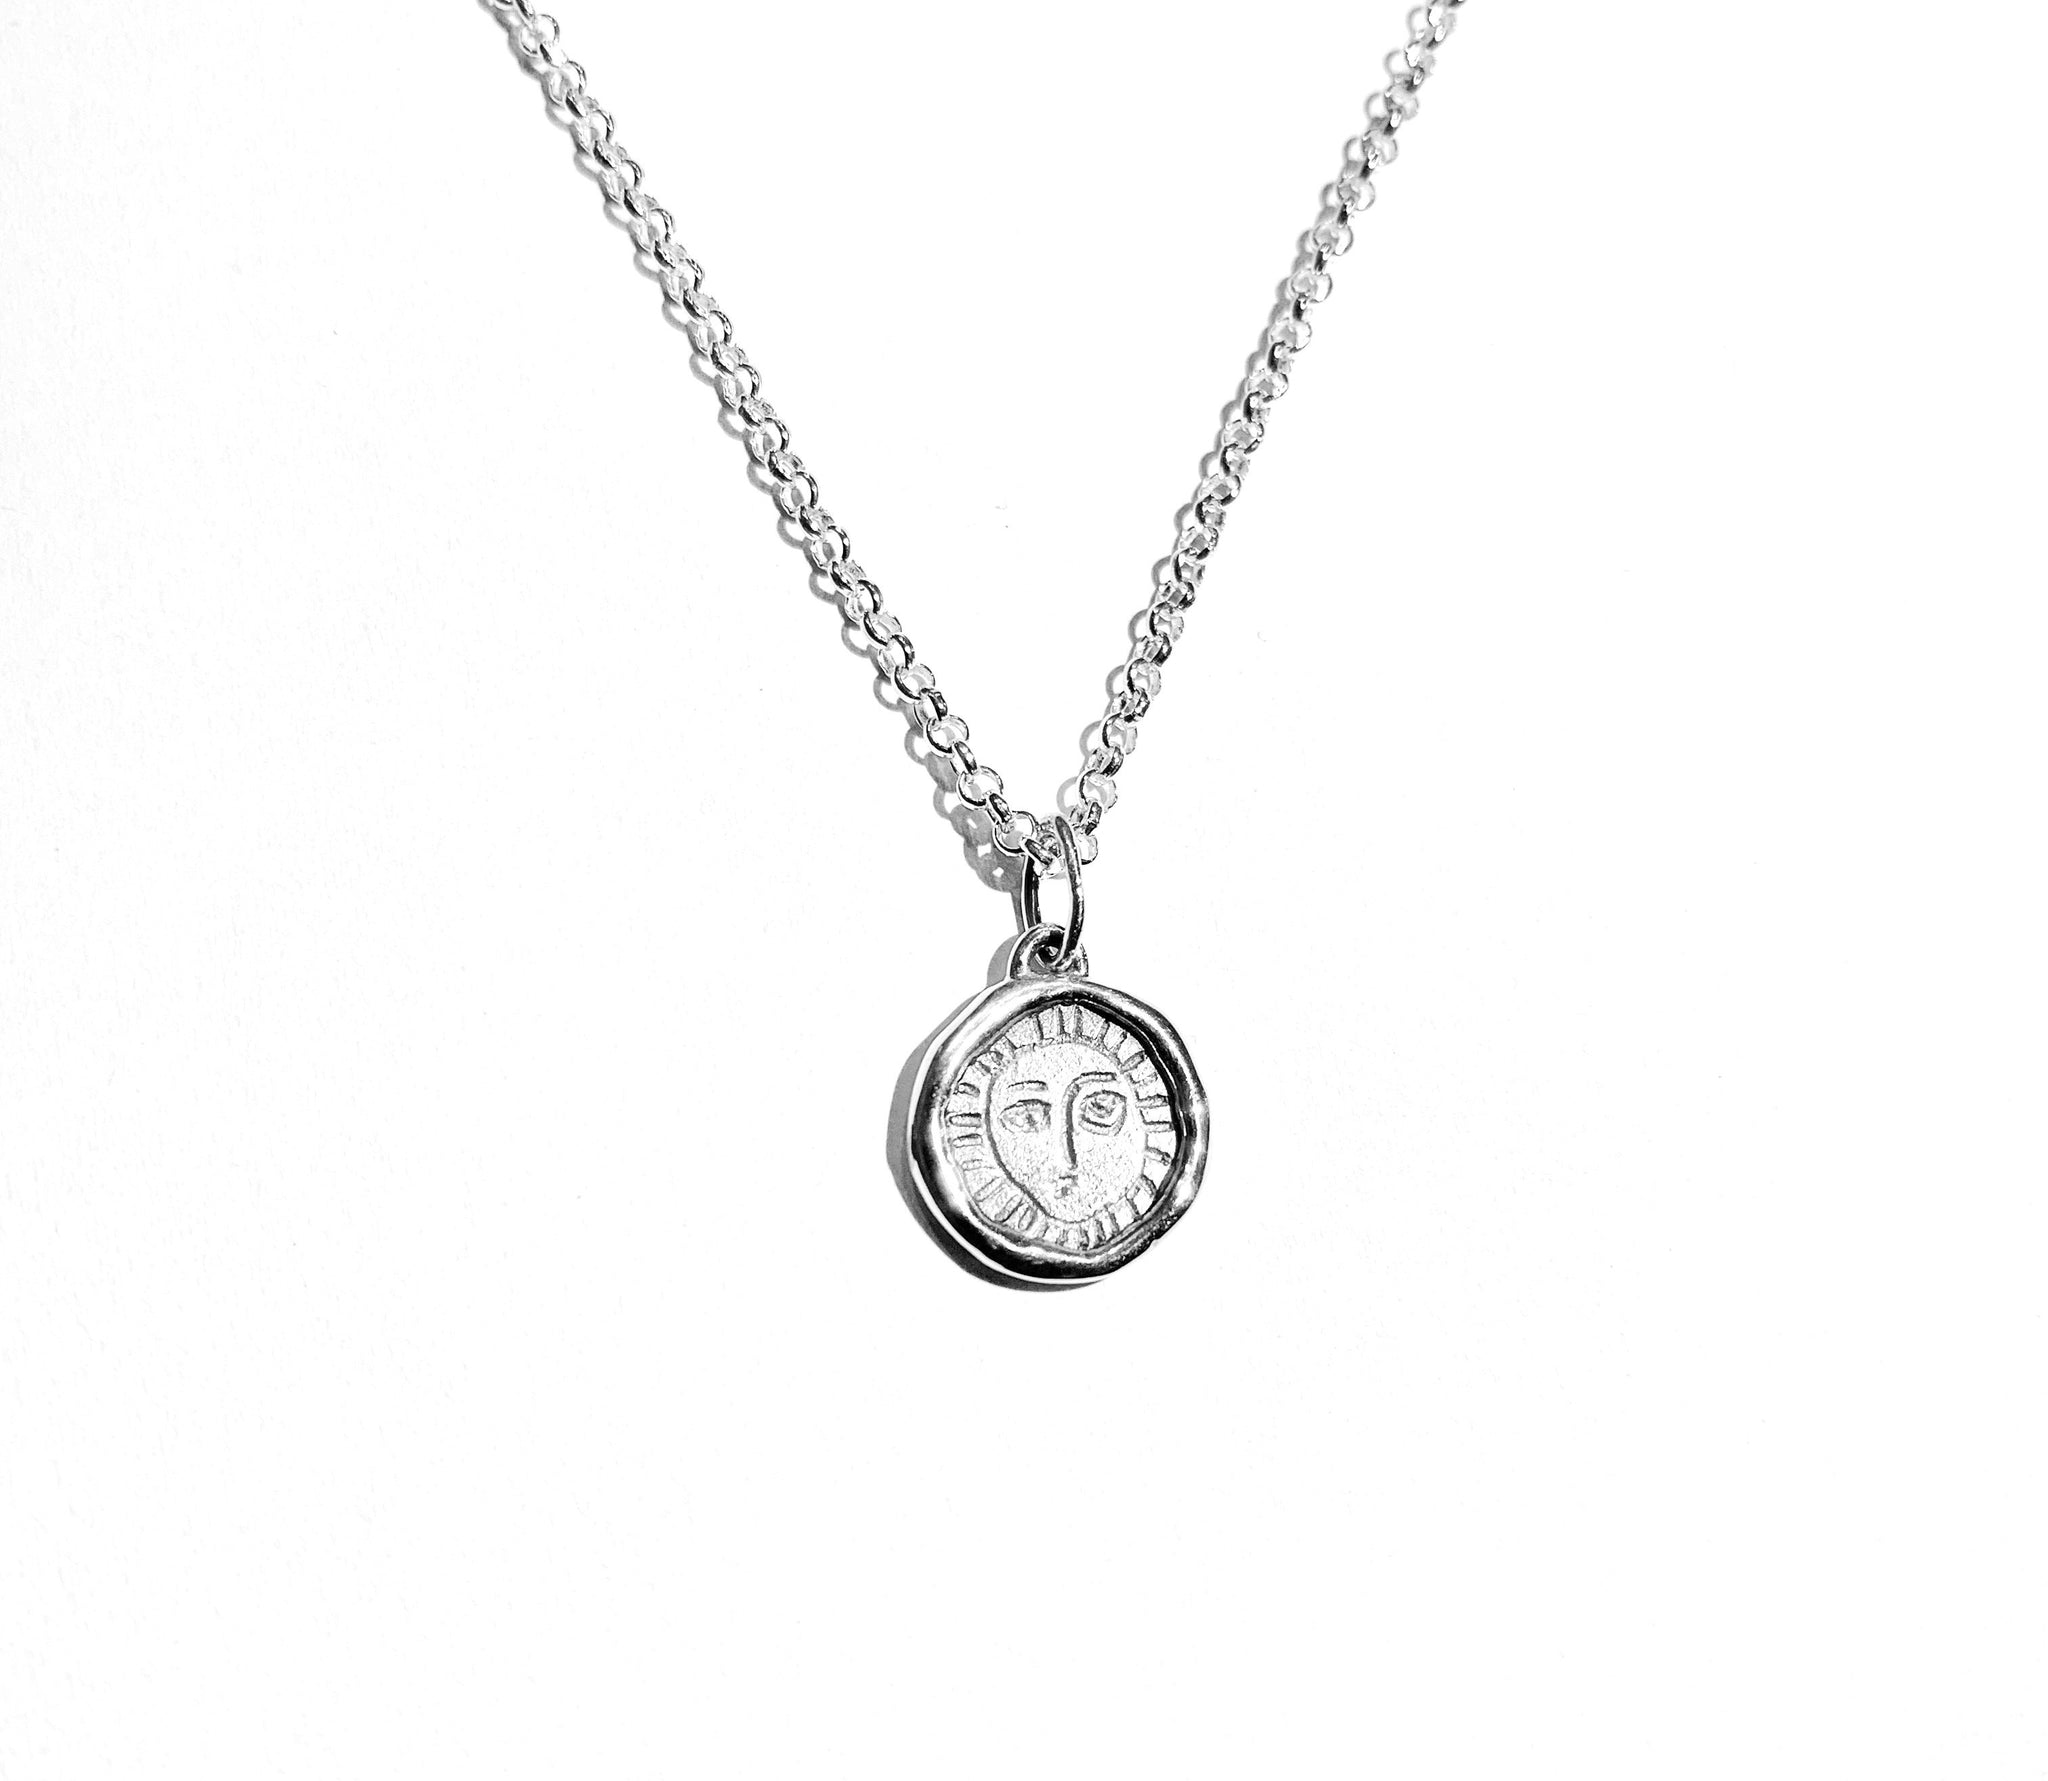 Picasso Silver Pendant Necklace